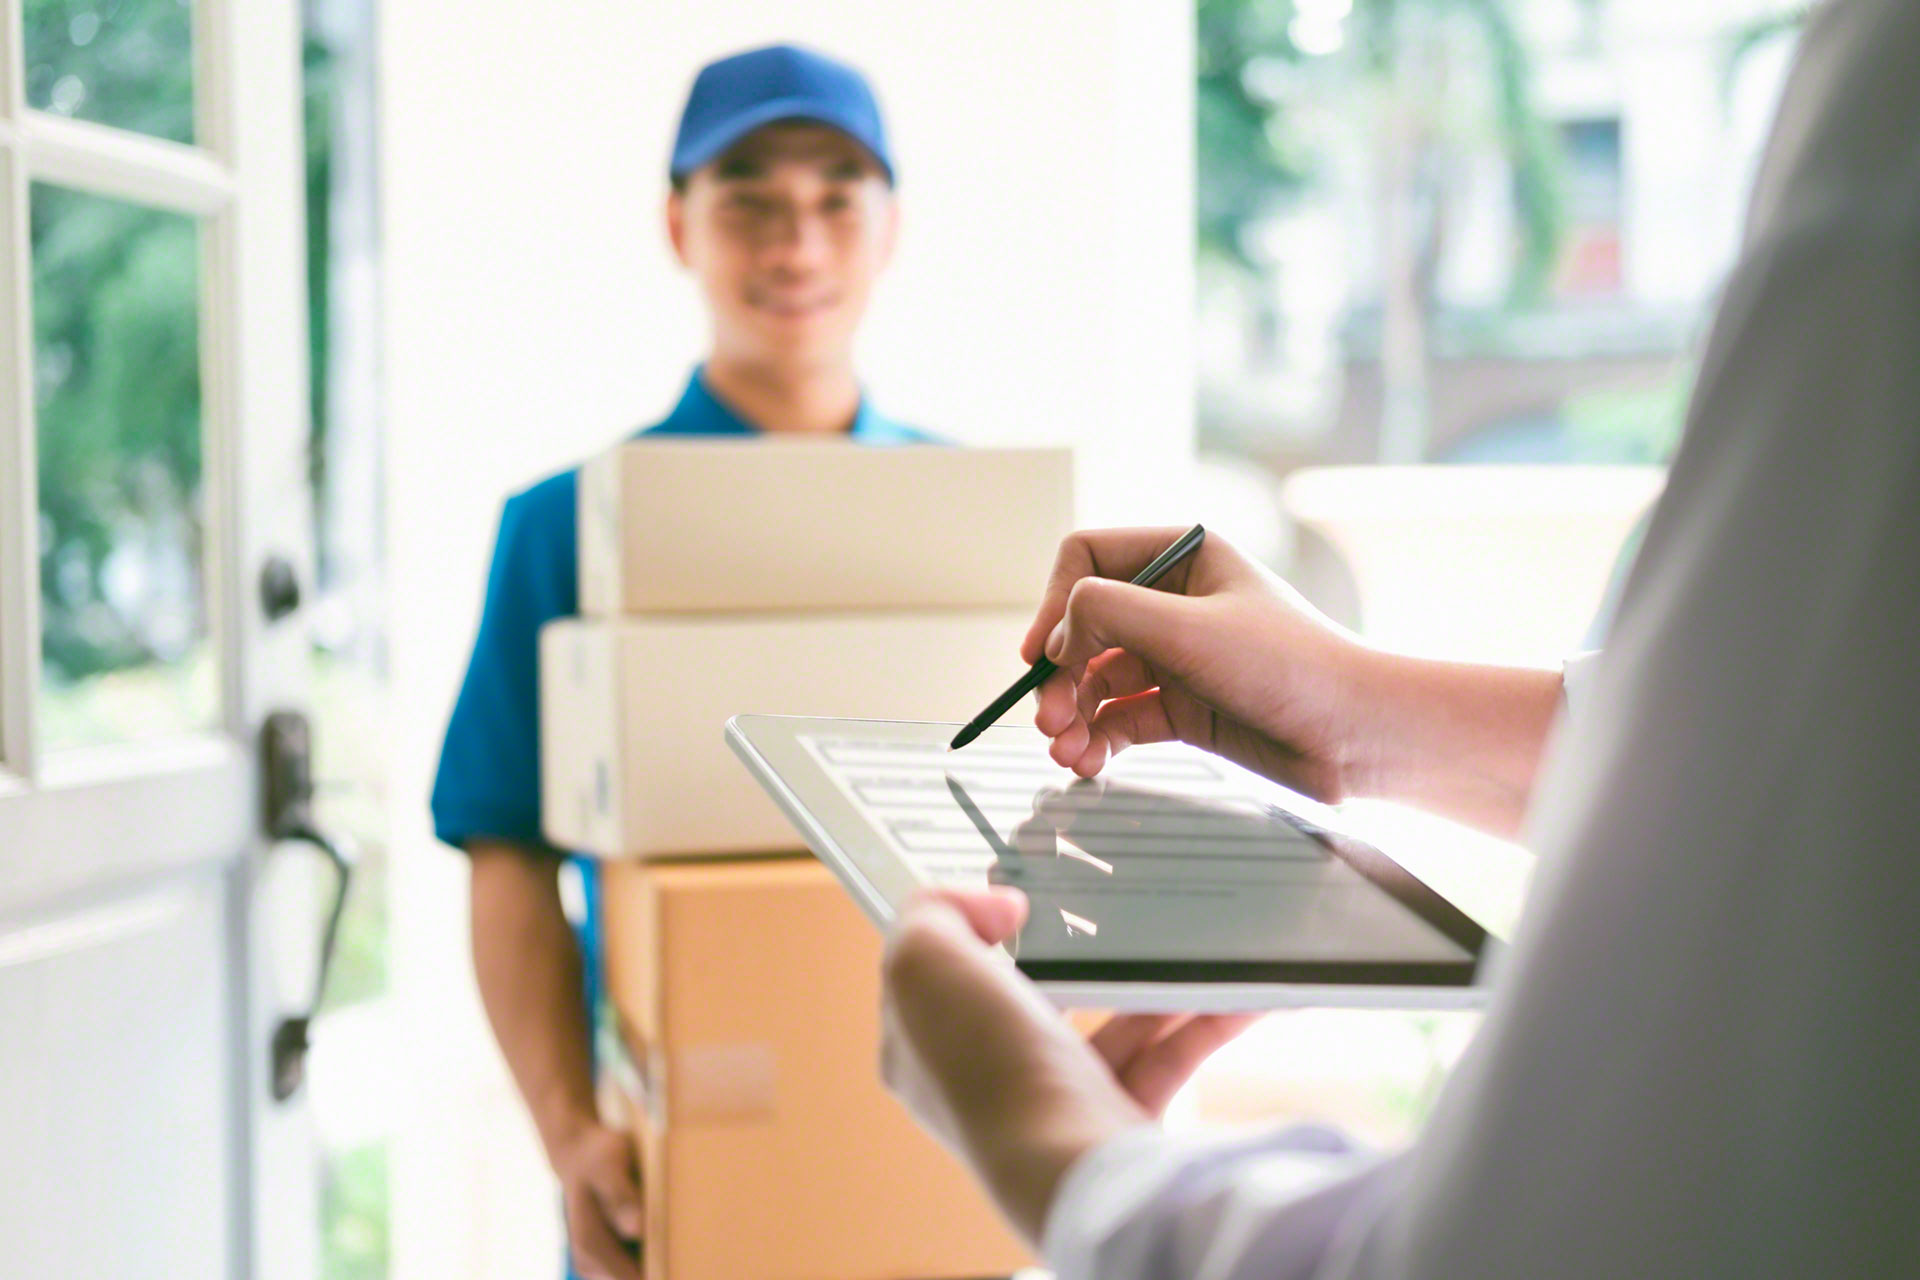 Electronic proof of delivery ensures that orders are delivered successfully